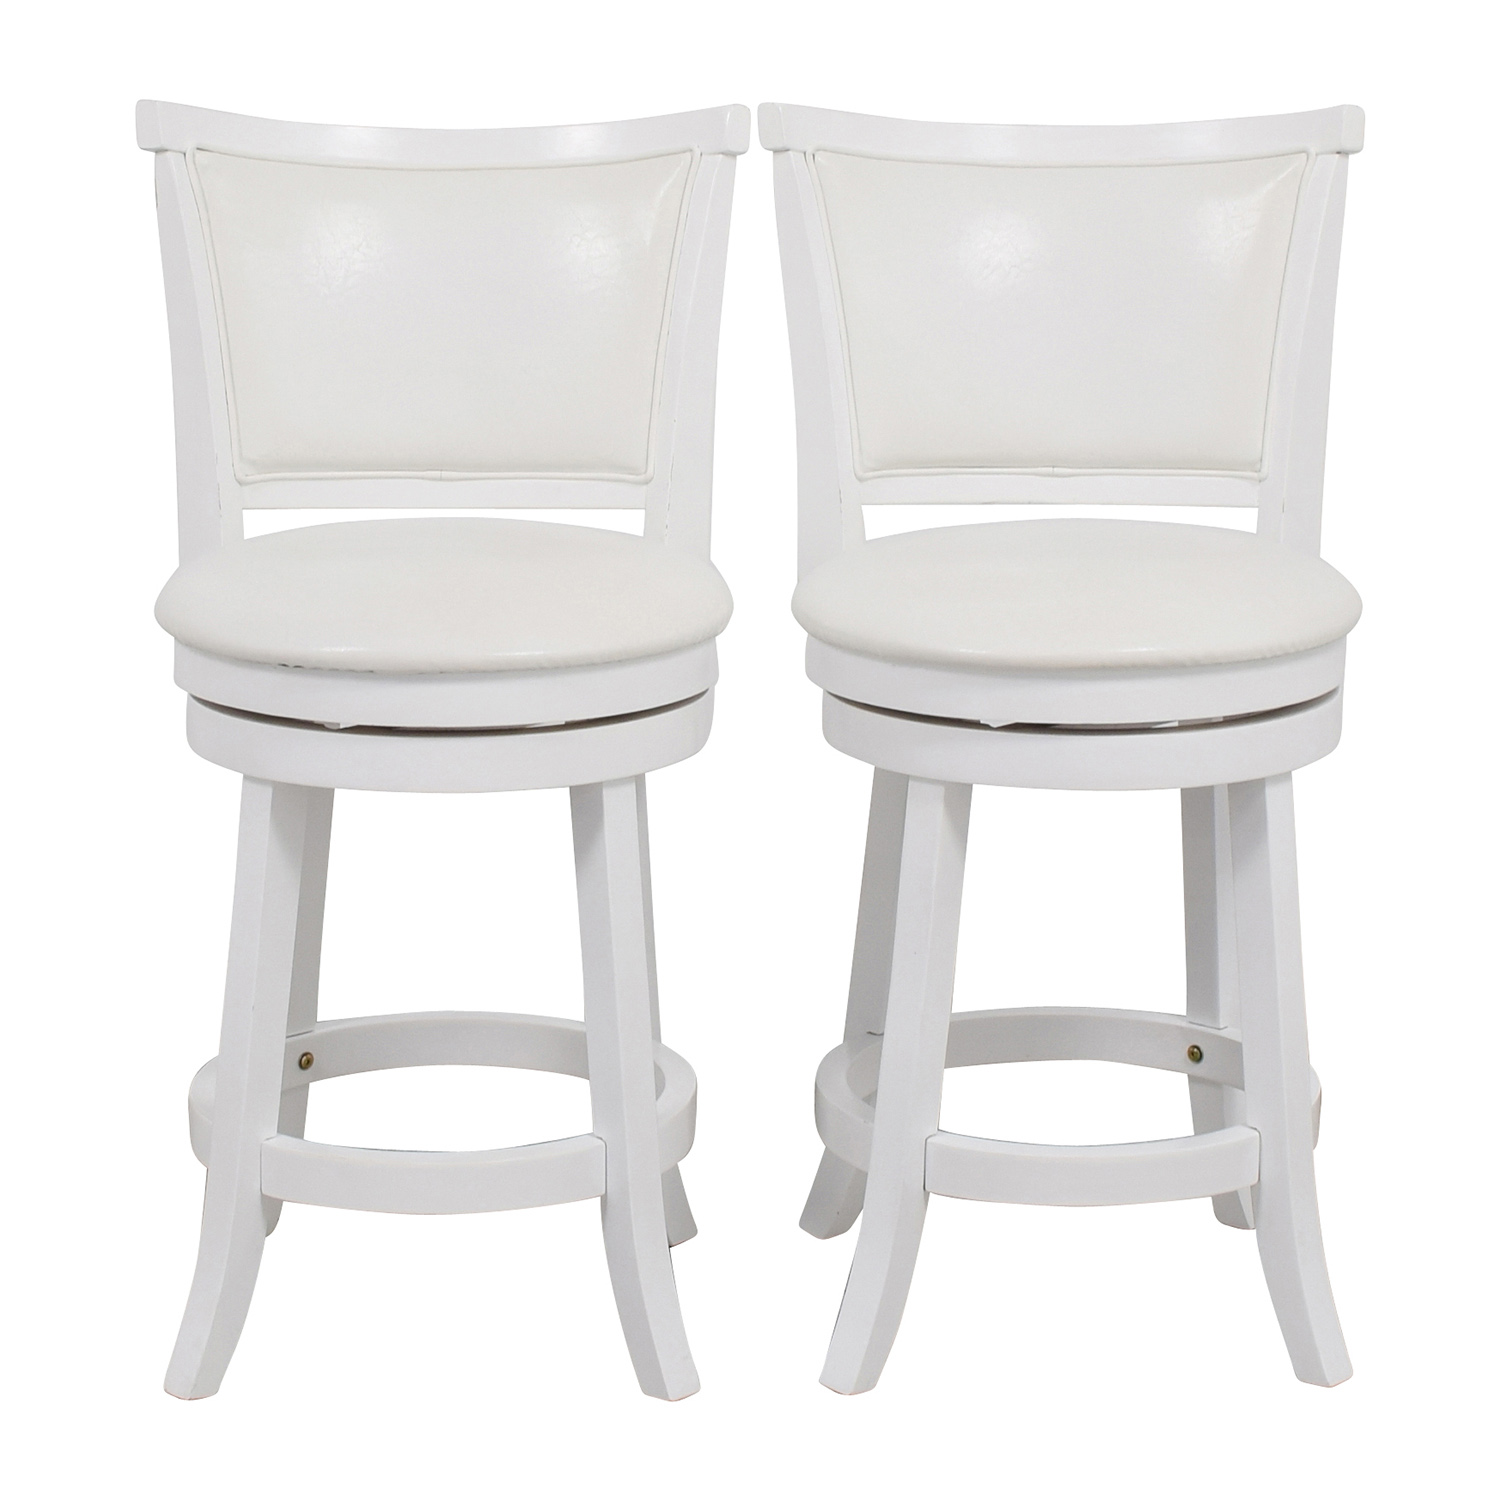 Lovely white counter height bar stools images for Counter height bar stools